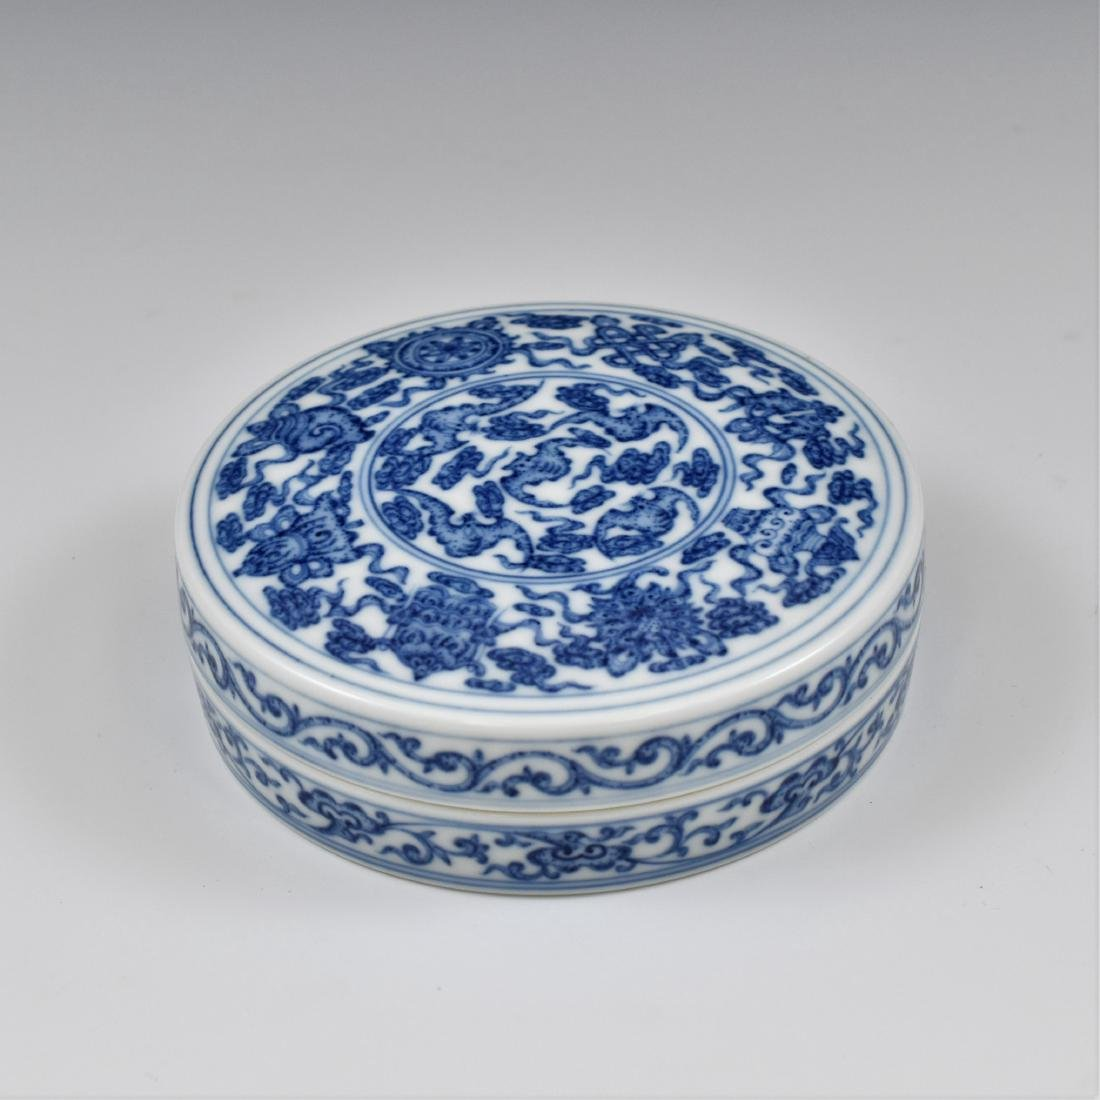 QING CHINESE PORCELAIN INK BOX - 4